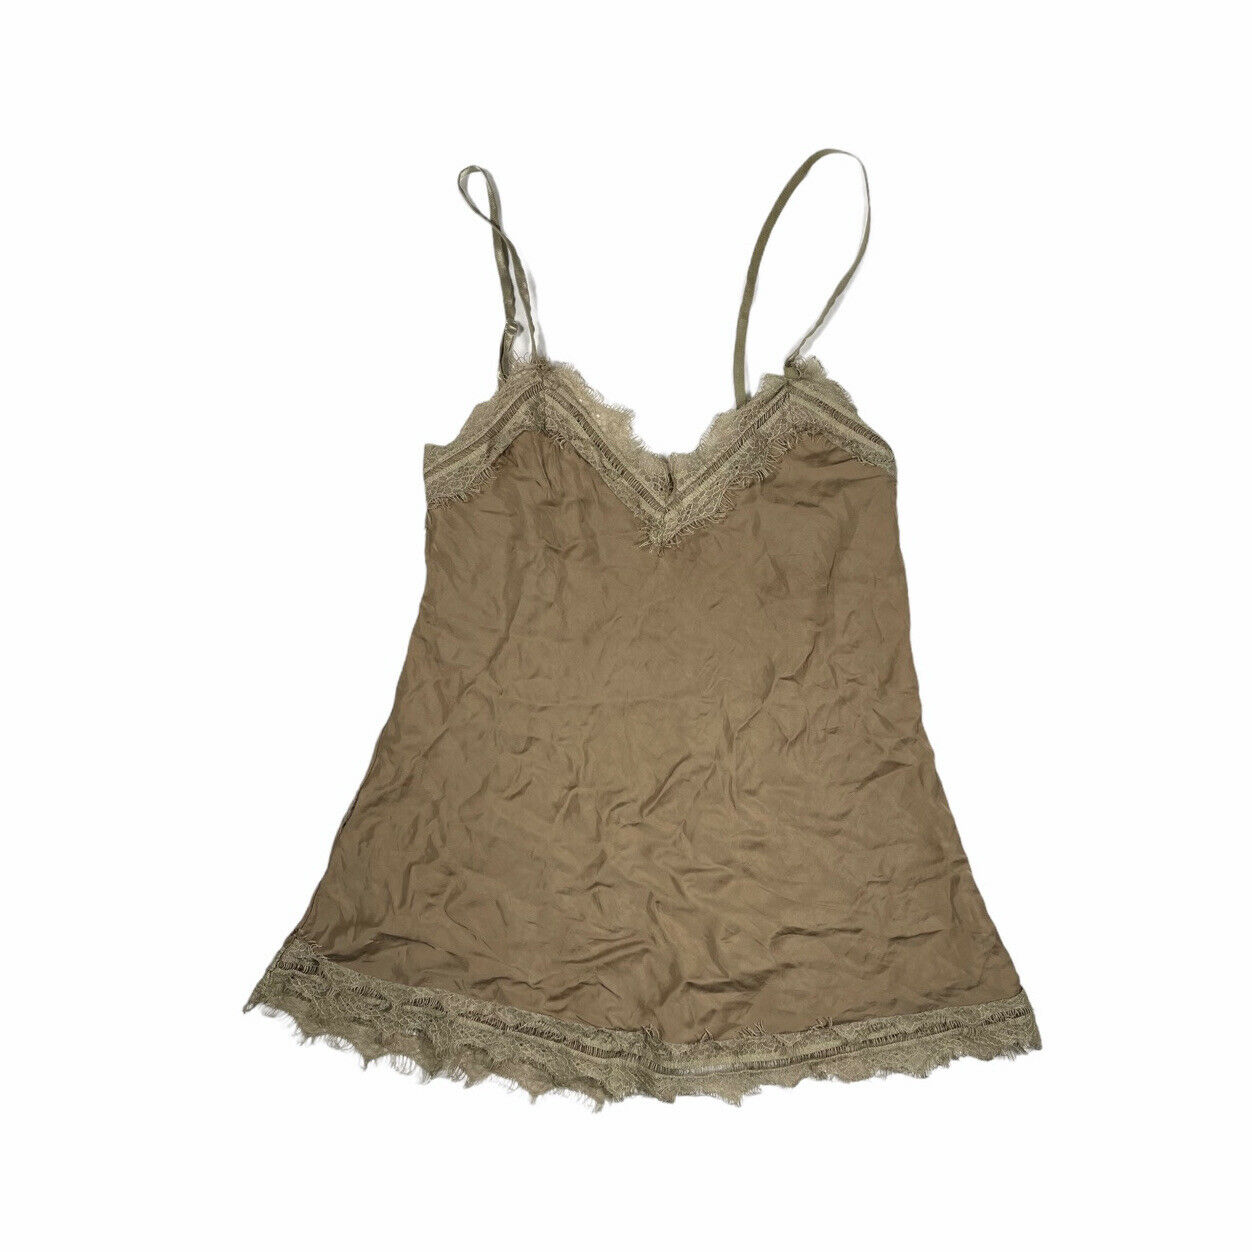 Vintage earthy lace cami fairycore - image 1